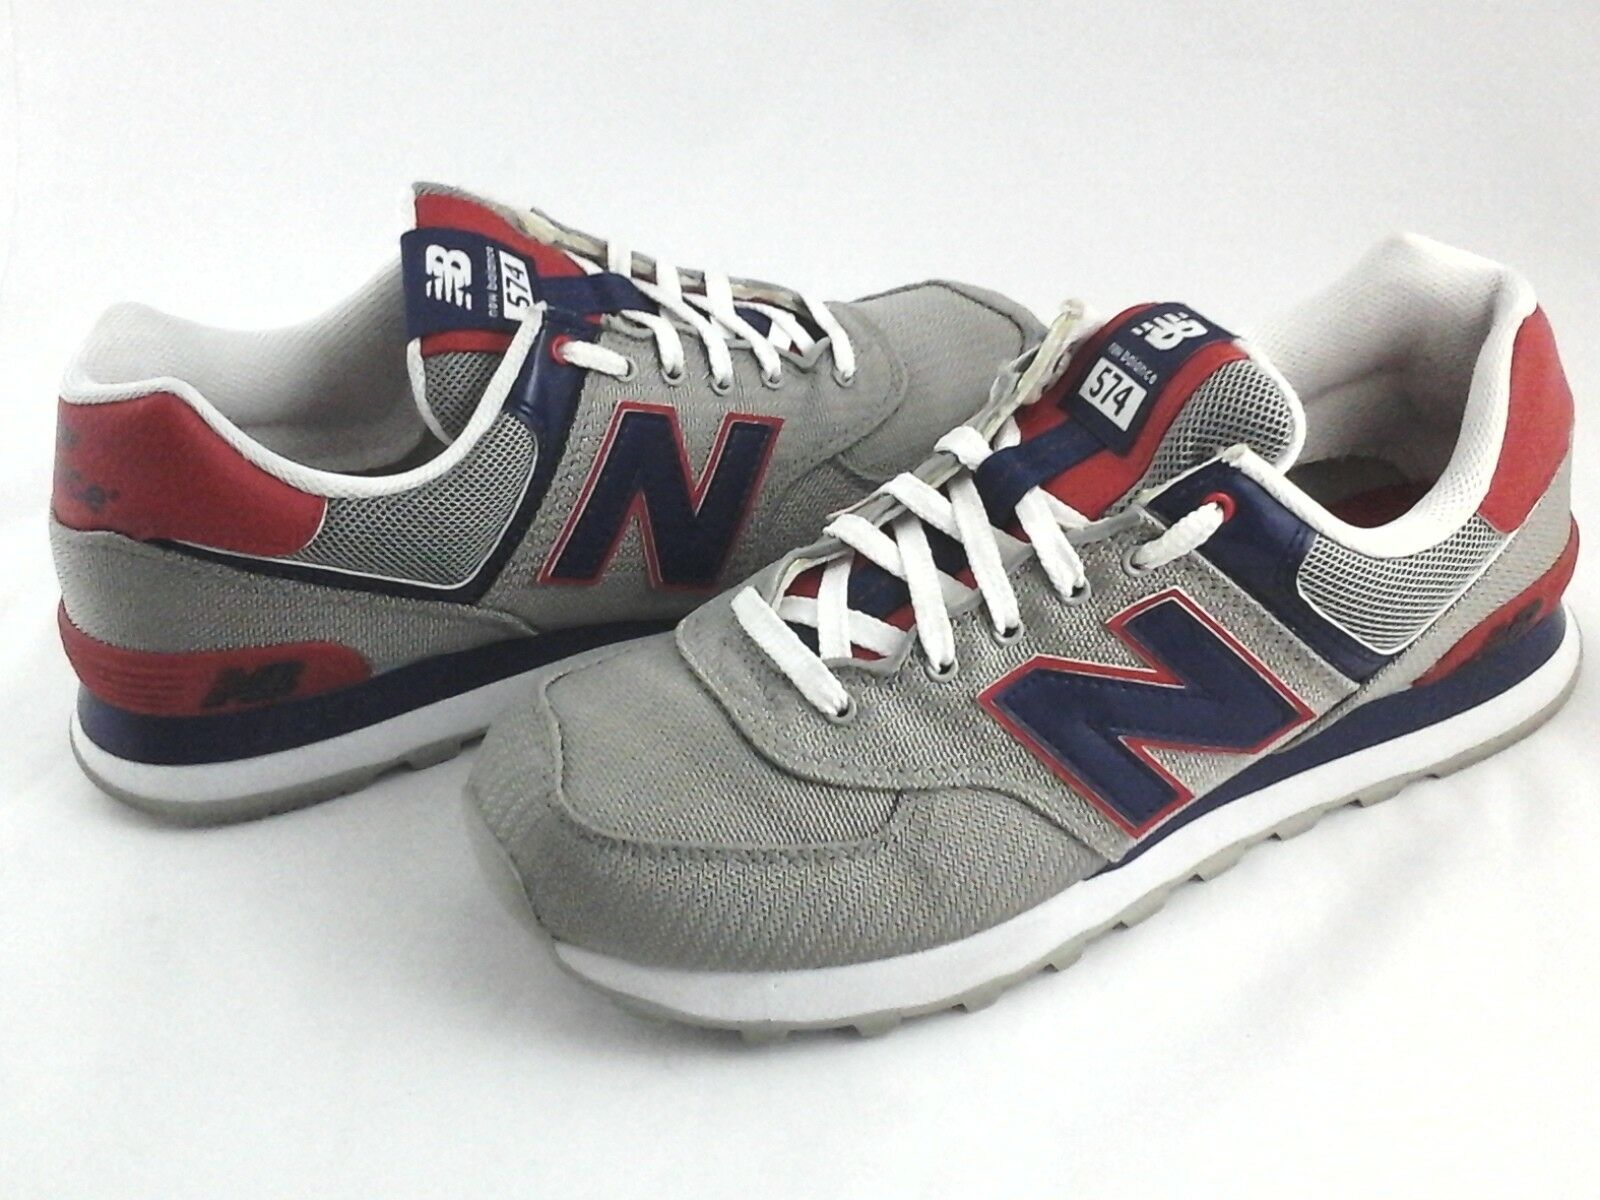 NEW BALANCE shoes 574 Encap Silver bluee Red Running Sneakers Men's US 8.5 EU 42